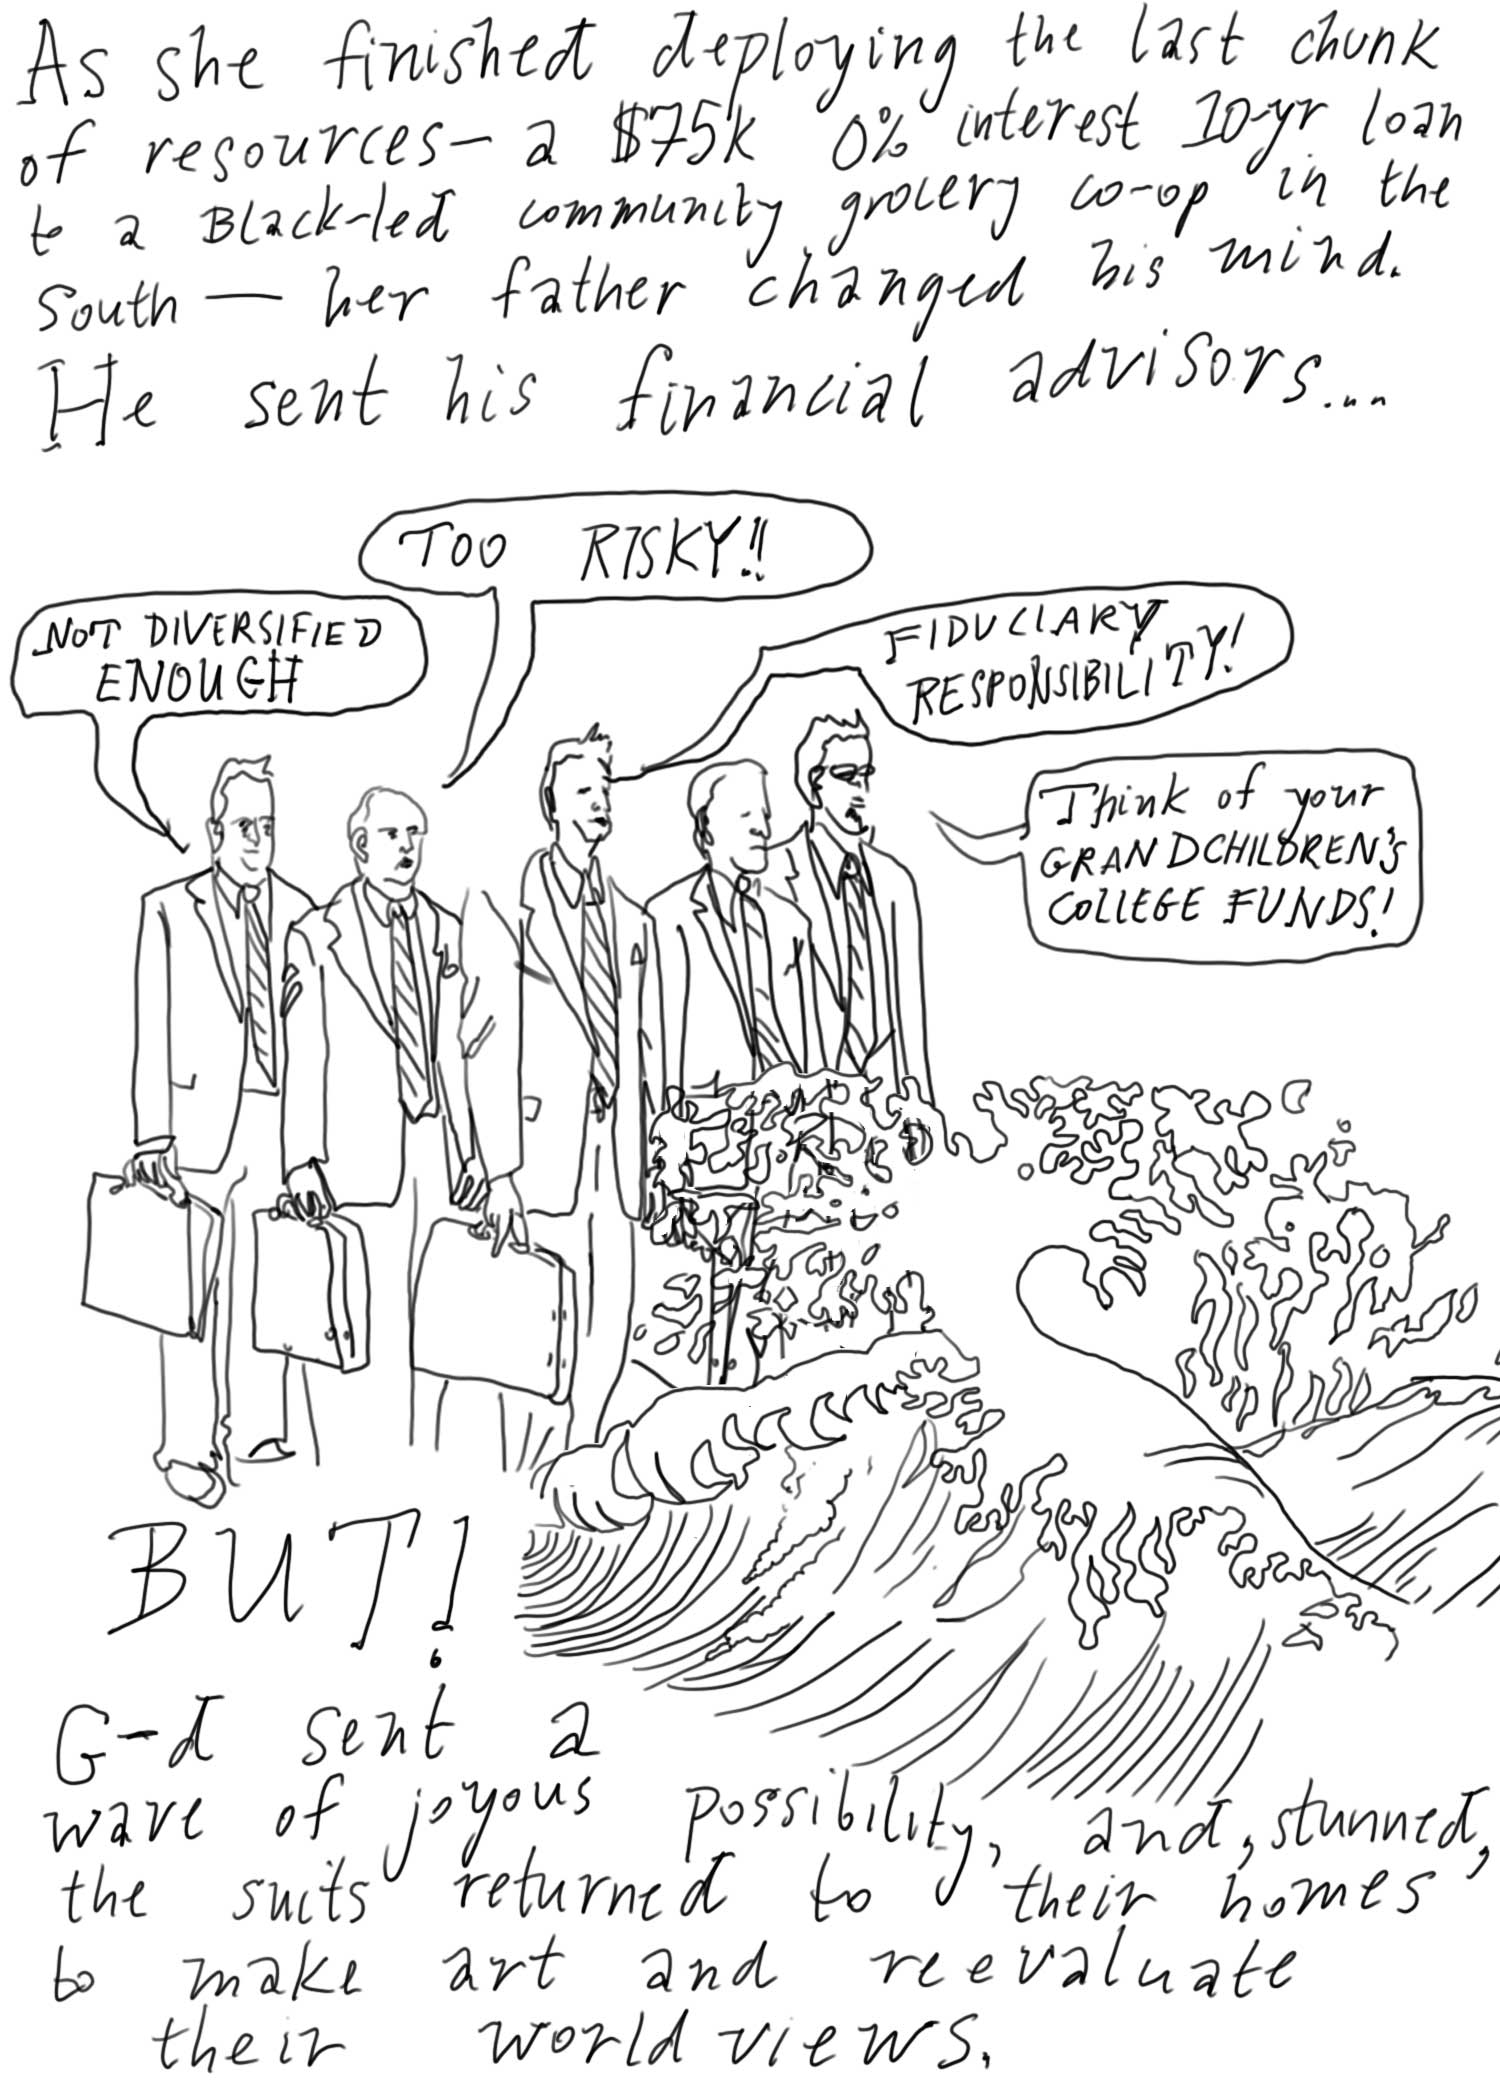 but then the financial advisors came but g-d sent a joyous wave of possibility and the suits retreated